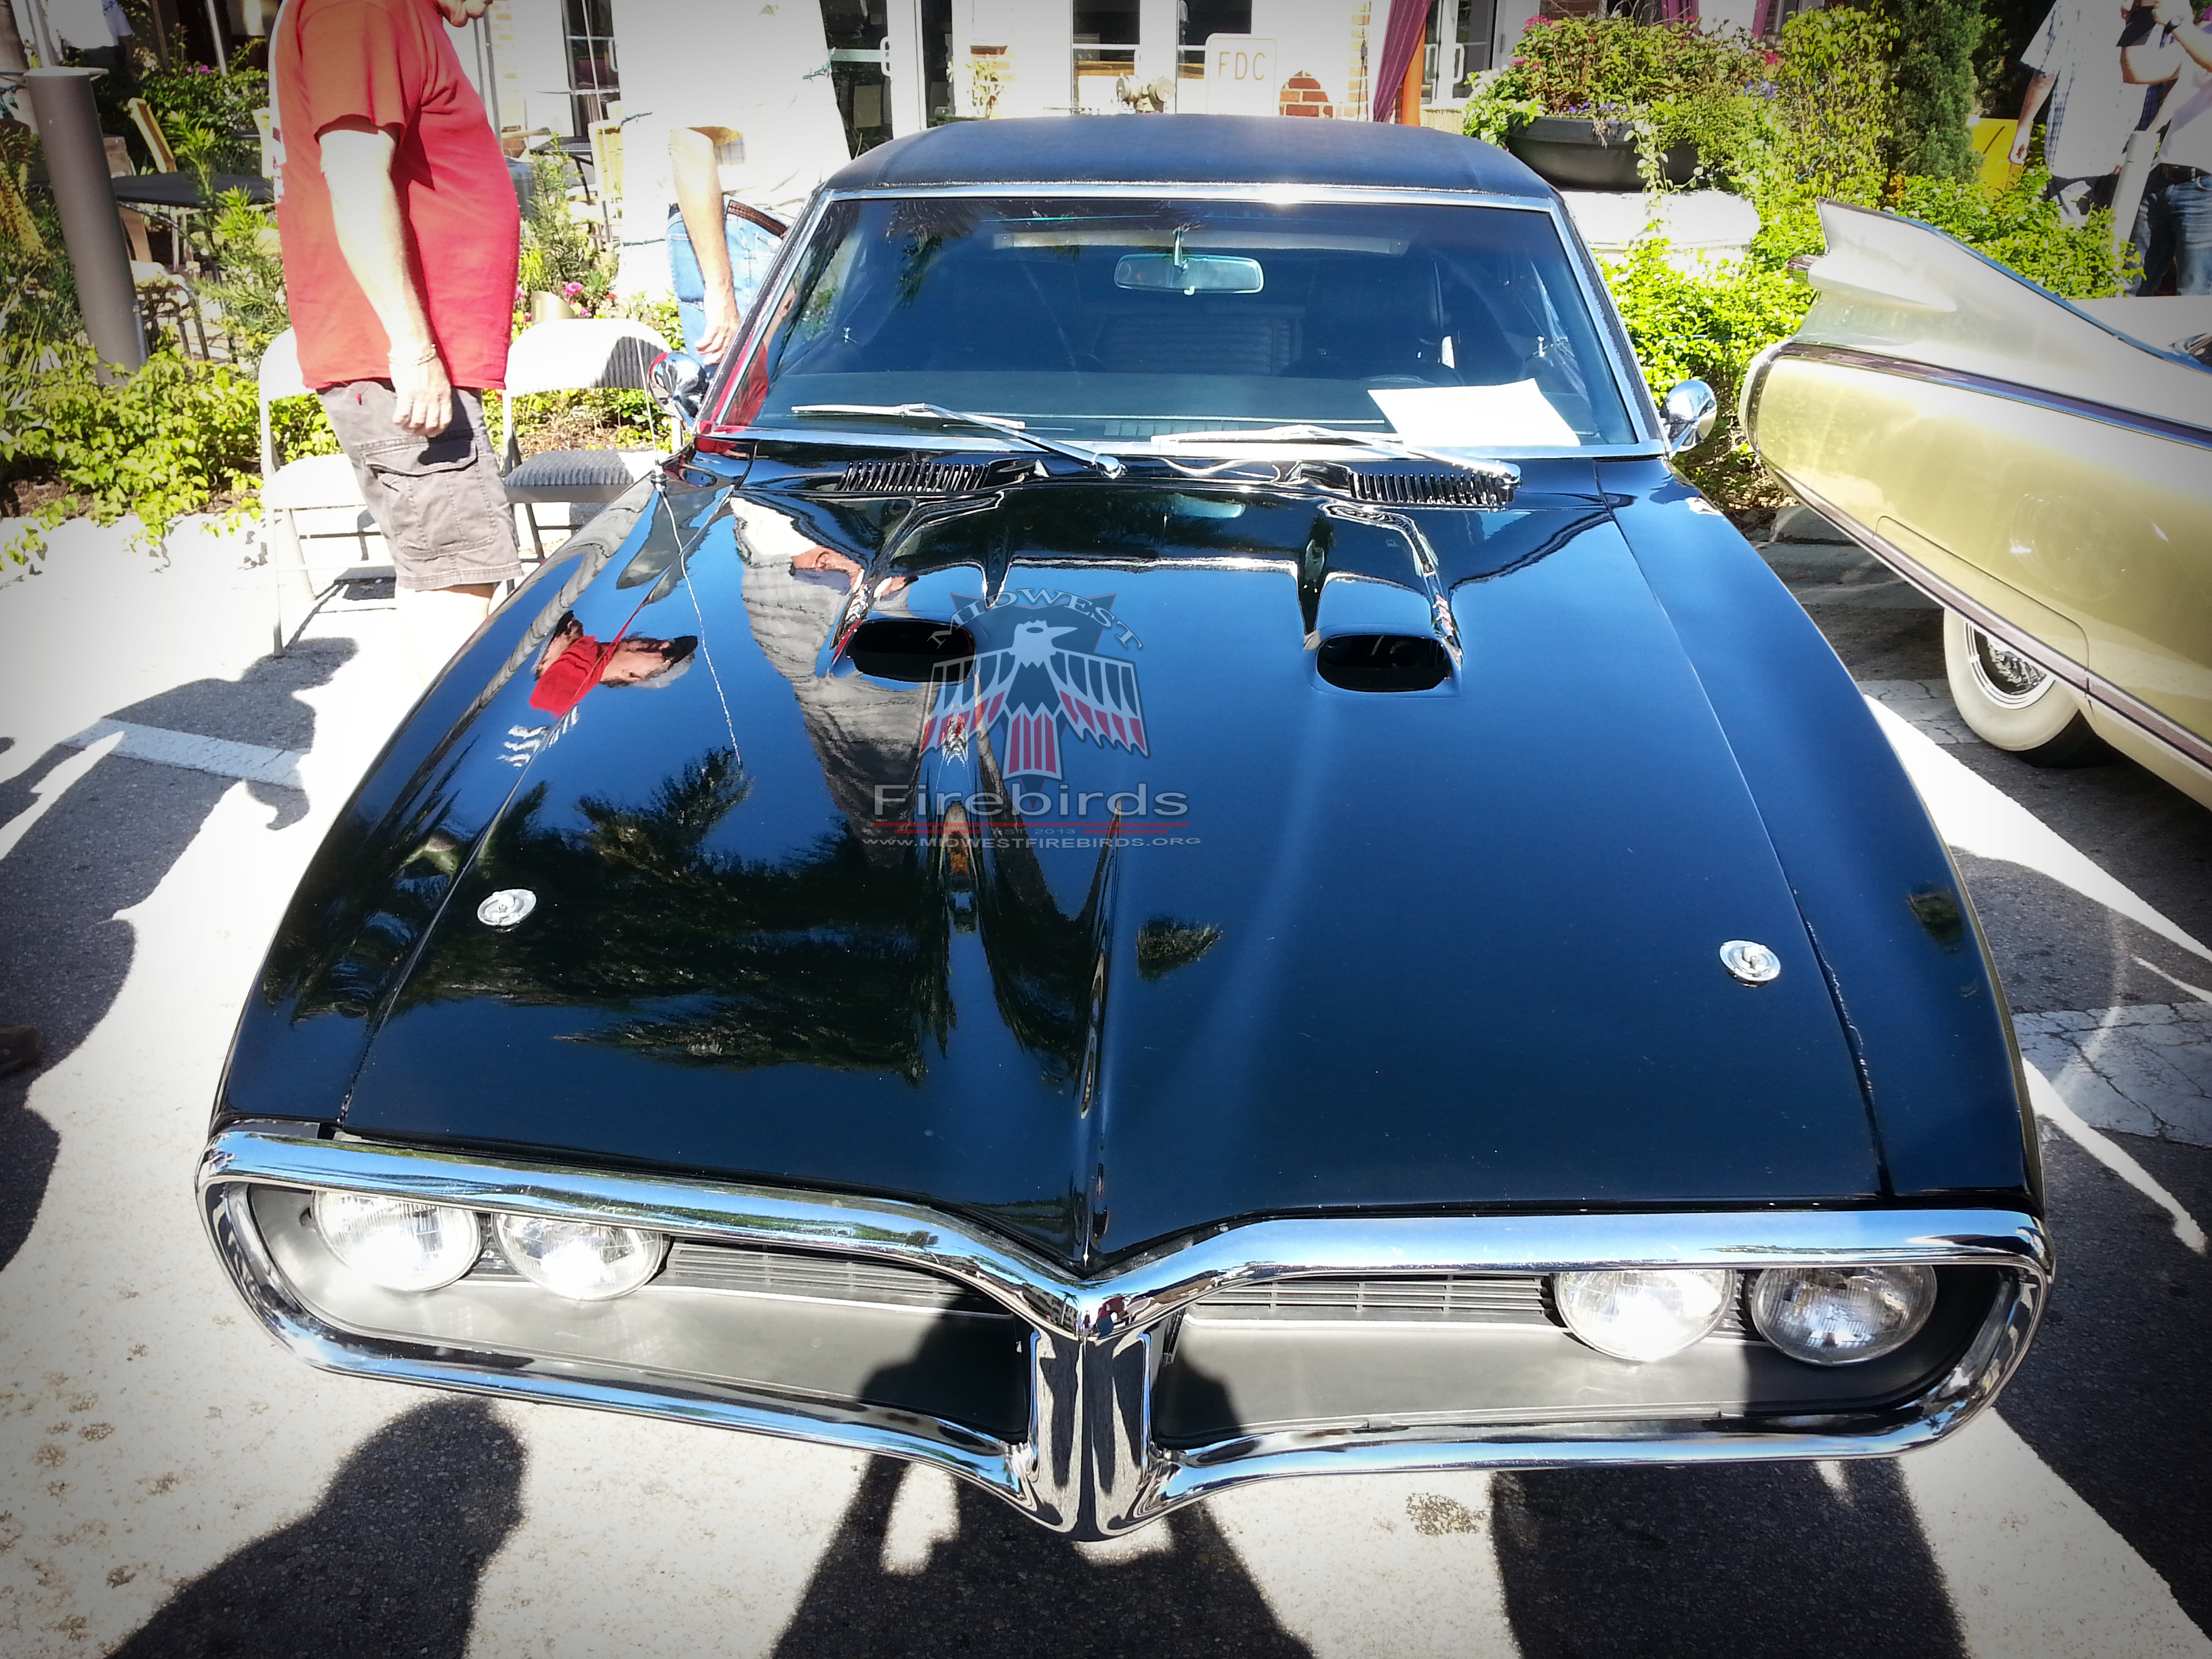 First-generation Pontiac Firebirds on display at the Cars on 5th car show in Naples, Florida.